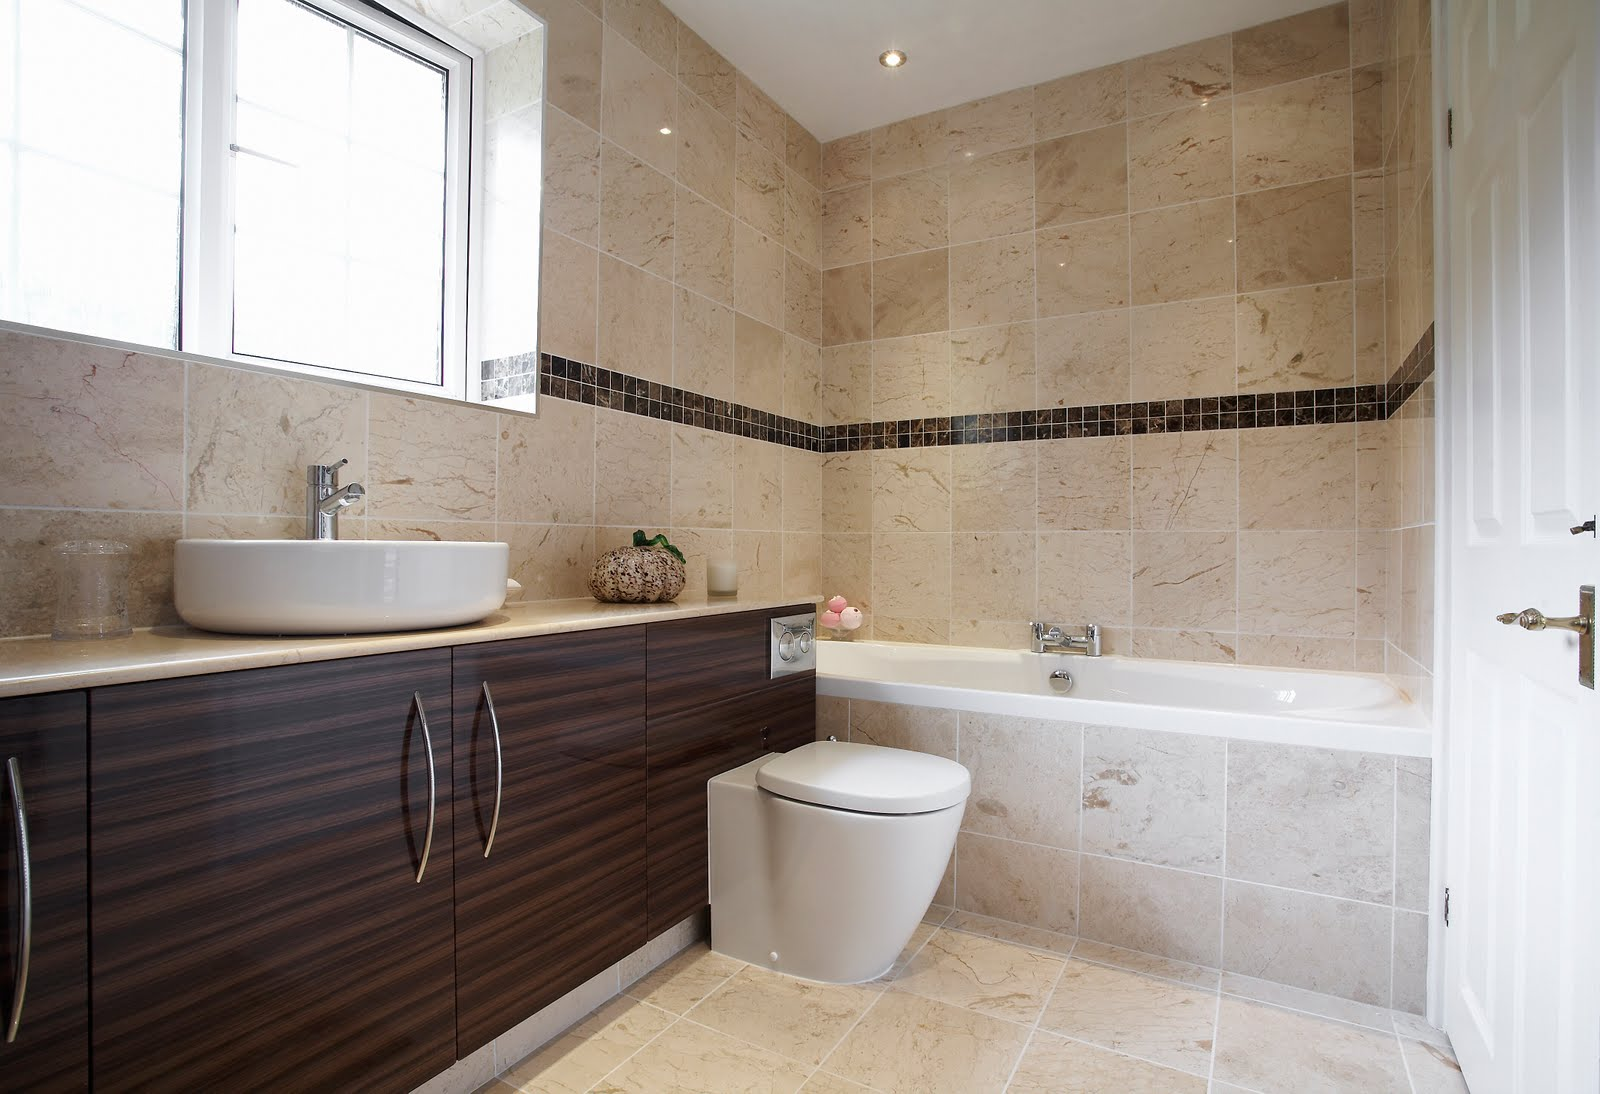 Cymru kitchens ltd cymru kitchens bathrooms for Bathroom design pictures gallery